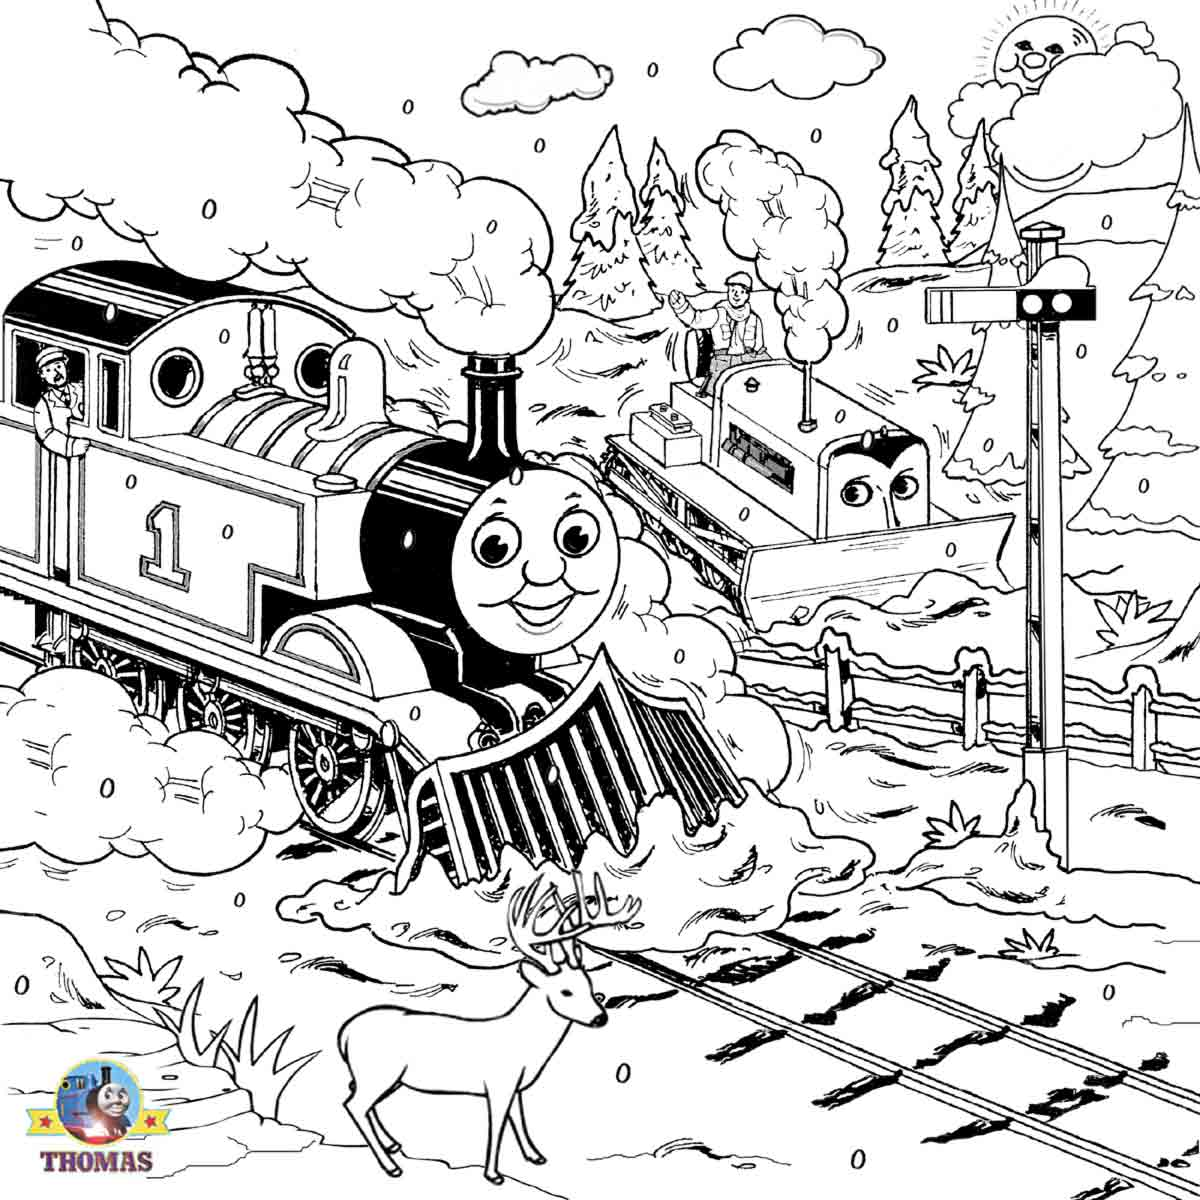 train engine coloring old train engine drawing engine coloring train